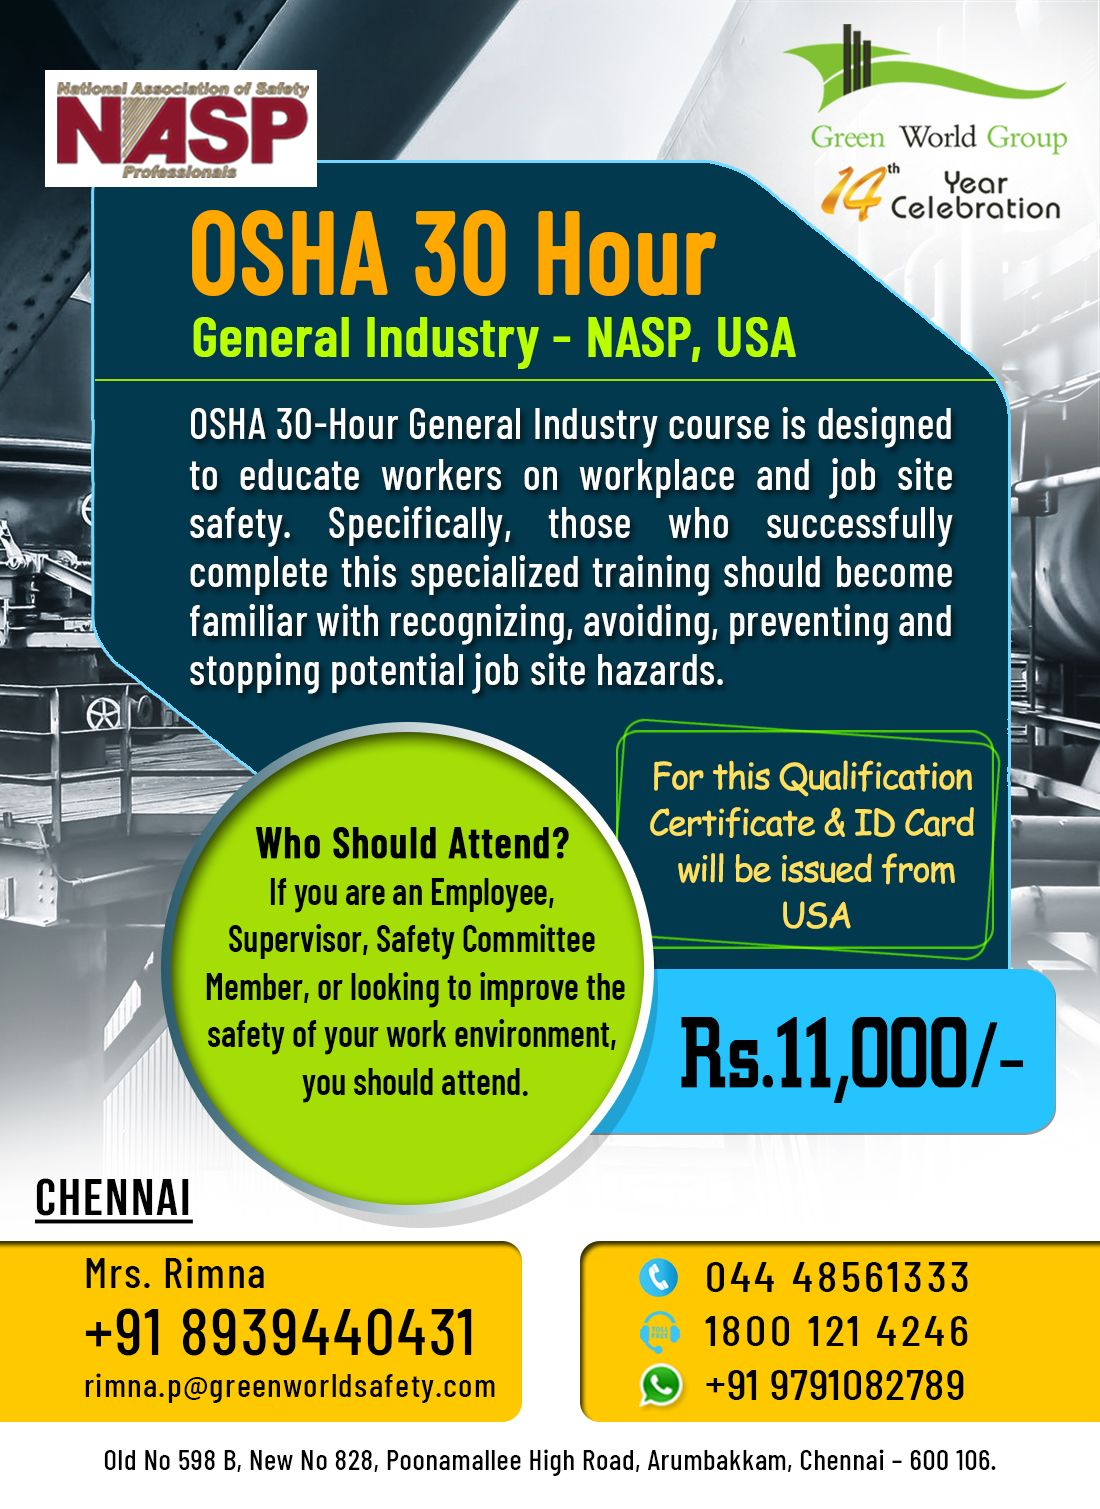 Join OSHA 30 Hour General Industry Course in Chennai in